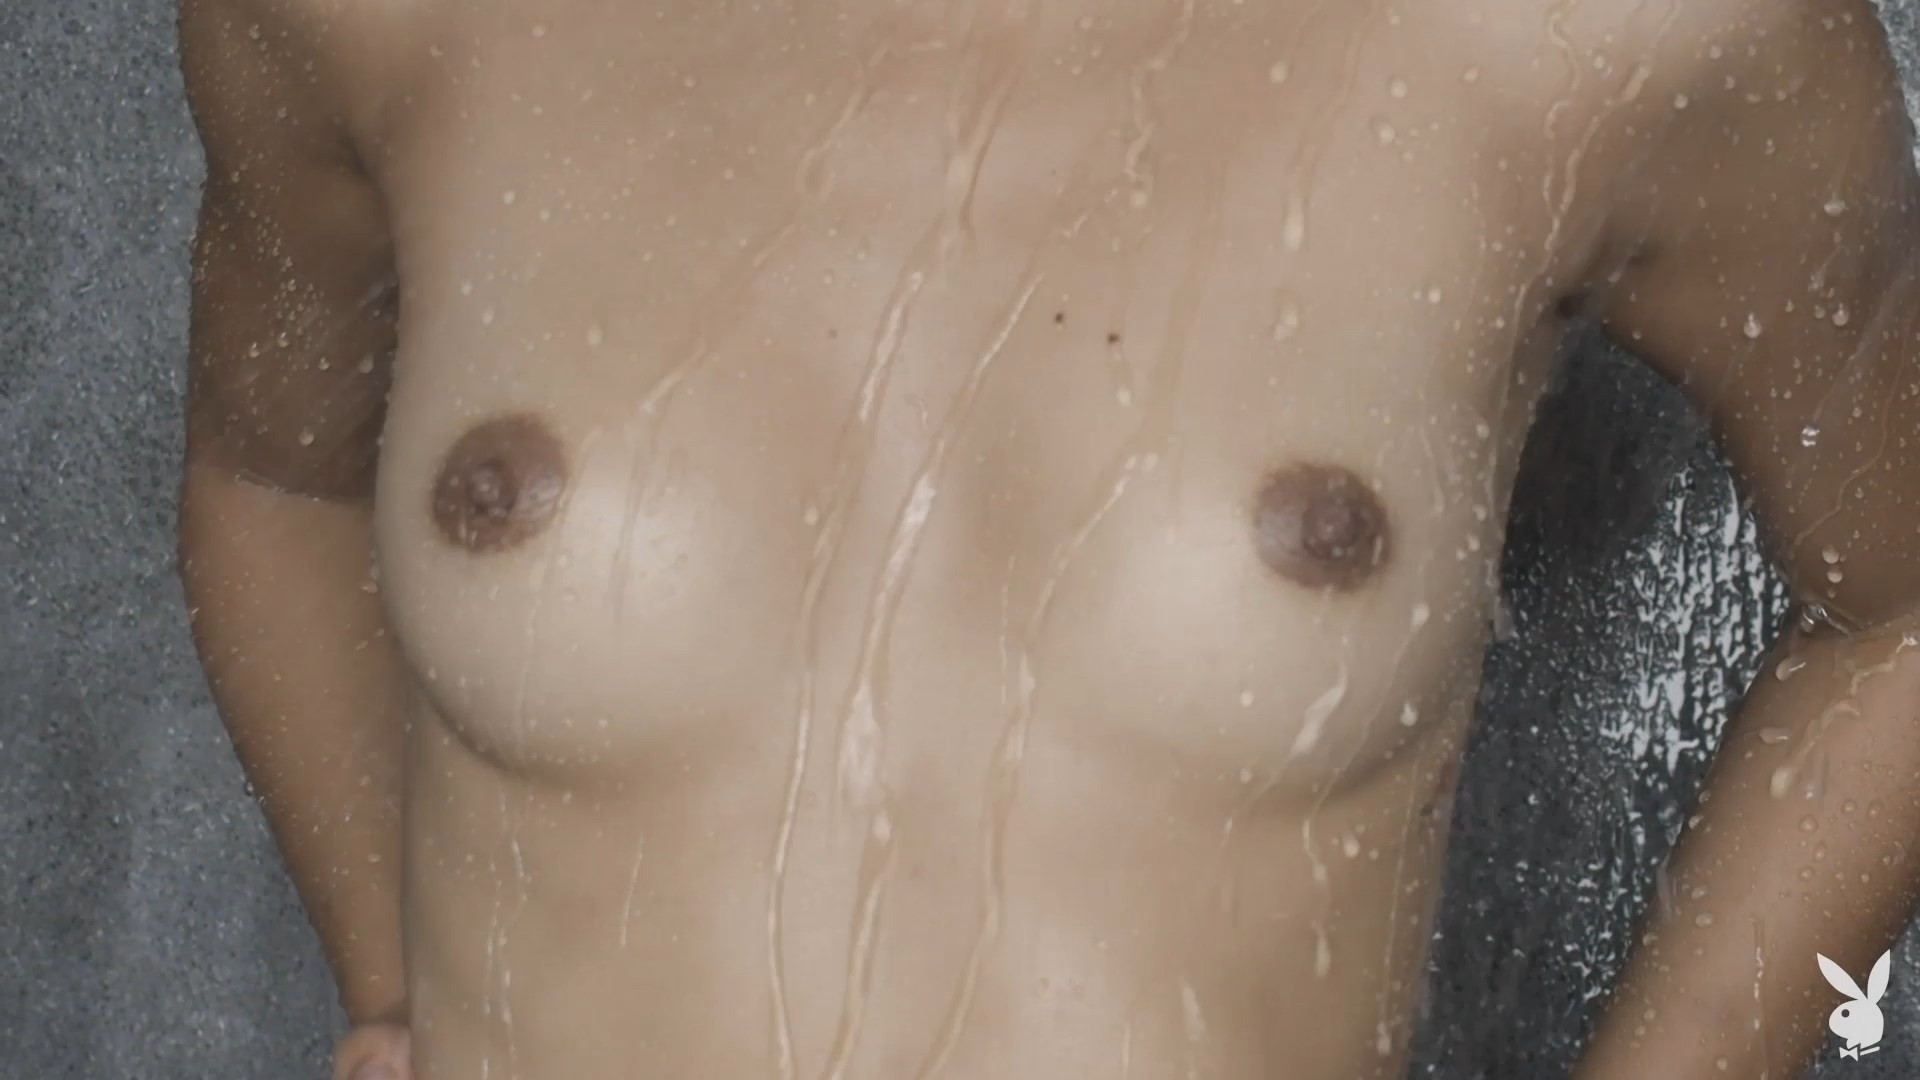 Cara Pin Nude Soft Shower scr thefappening.nu 8